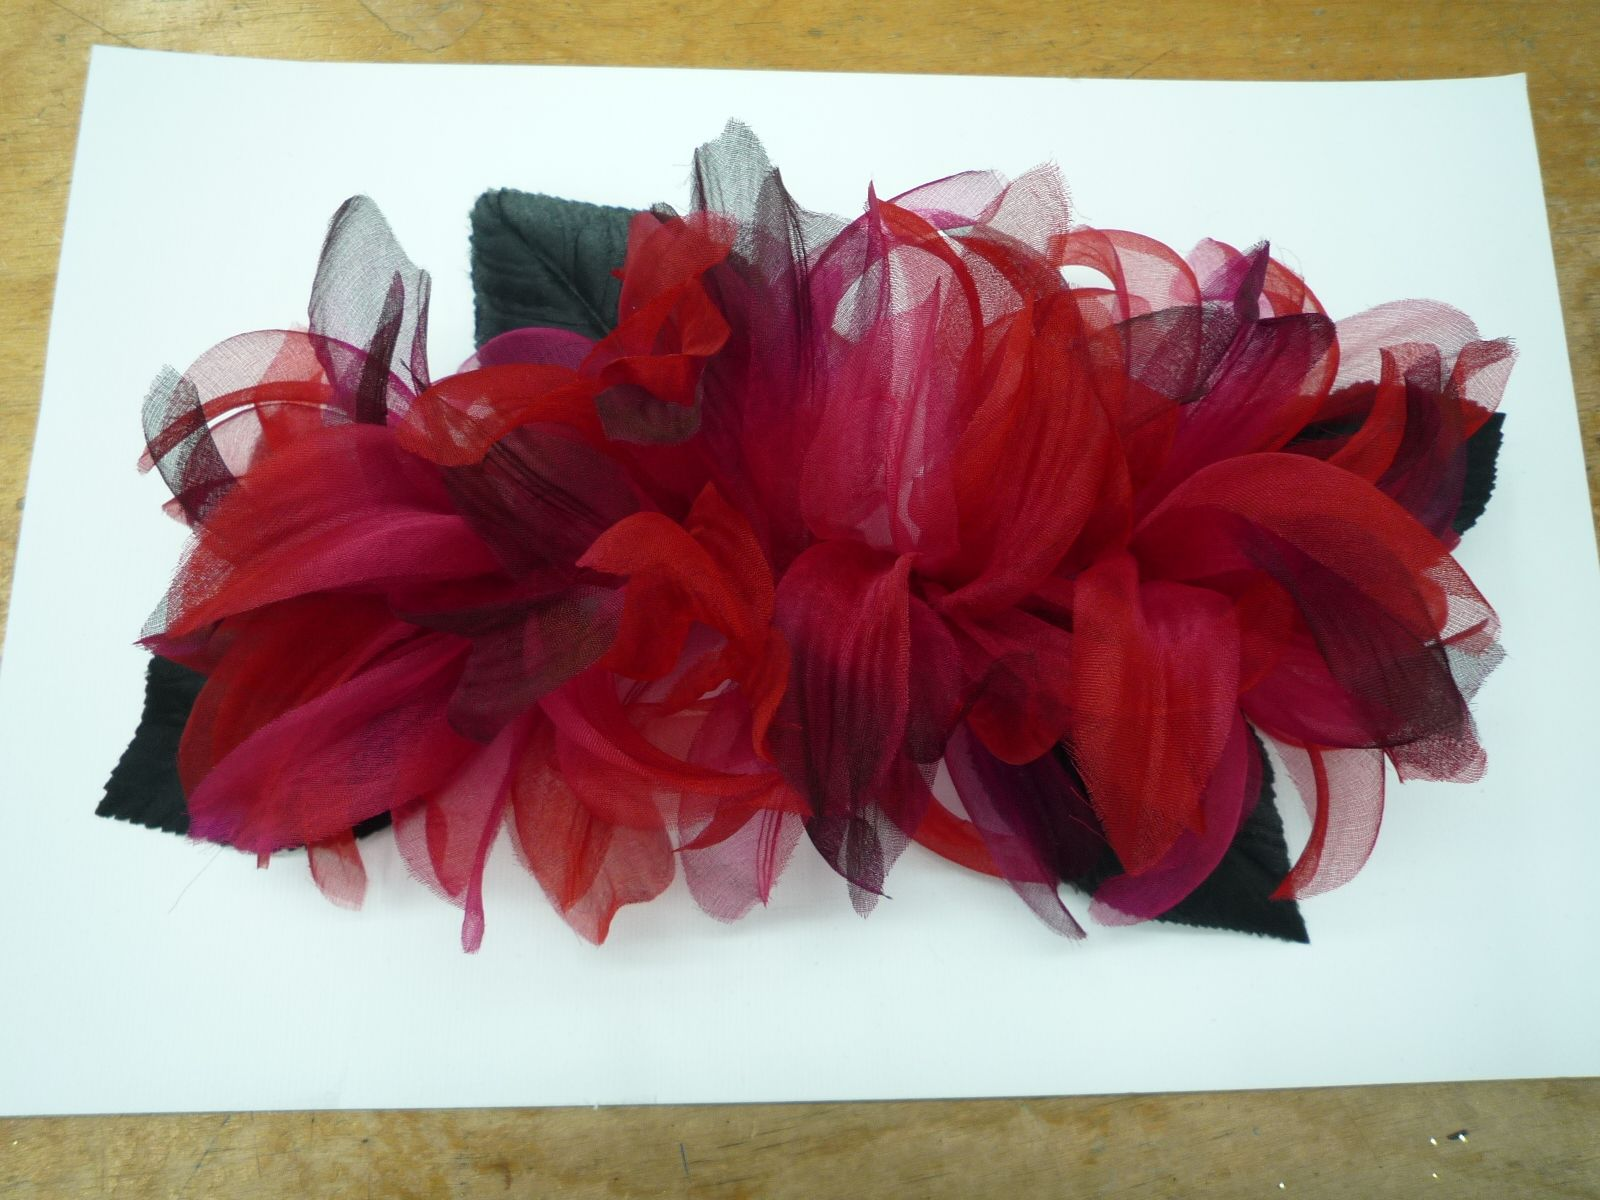 We had some loose petals laying around so we made this Gorgeous Cluster!  .... Just another day at the office!  See more @ www.customfabricflowers.com or come visit us on 36th street in NYC today!